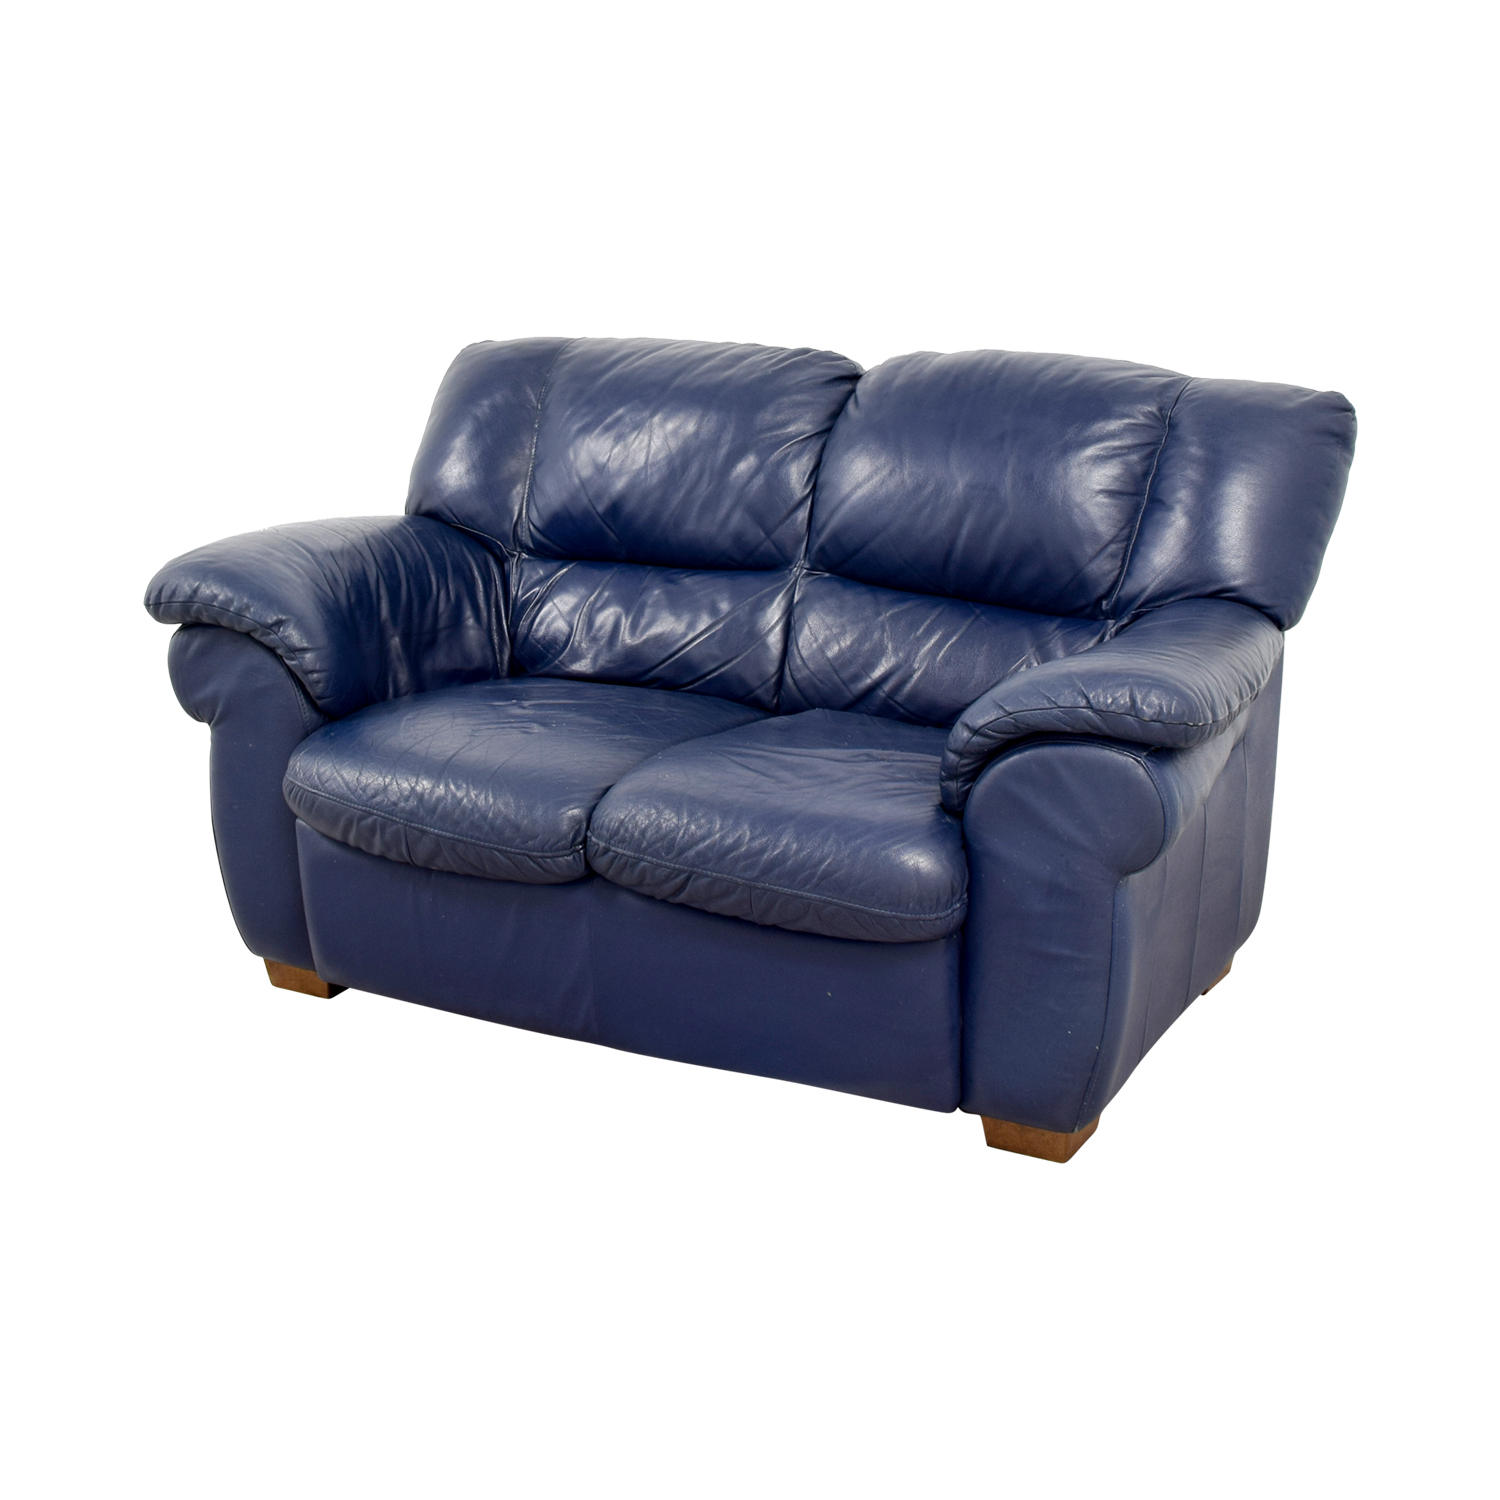 80 Off Macy S Macy S Navy Blue Leather Loveseat Sofas